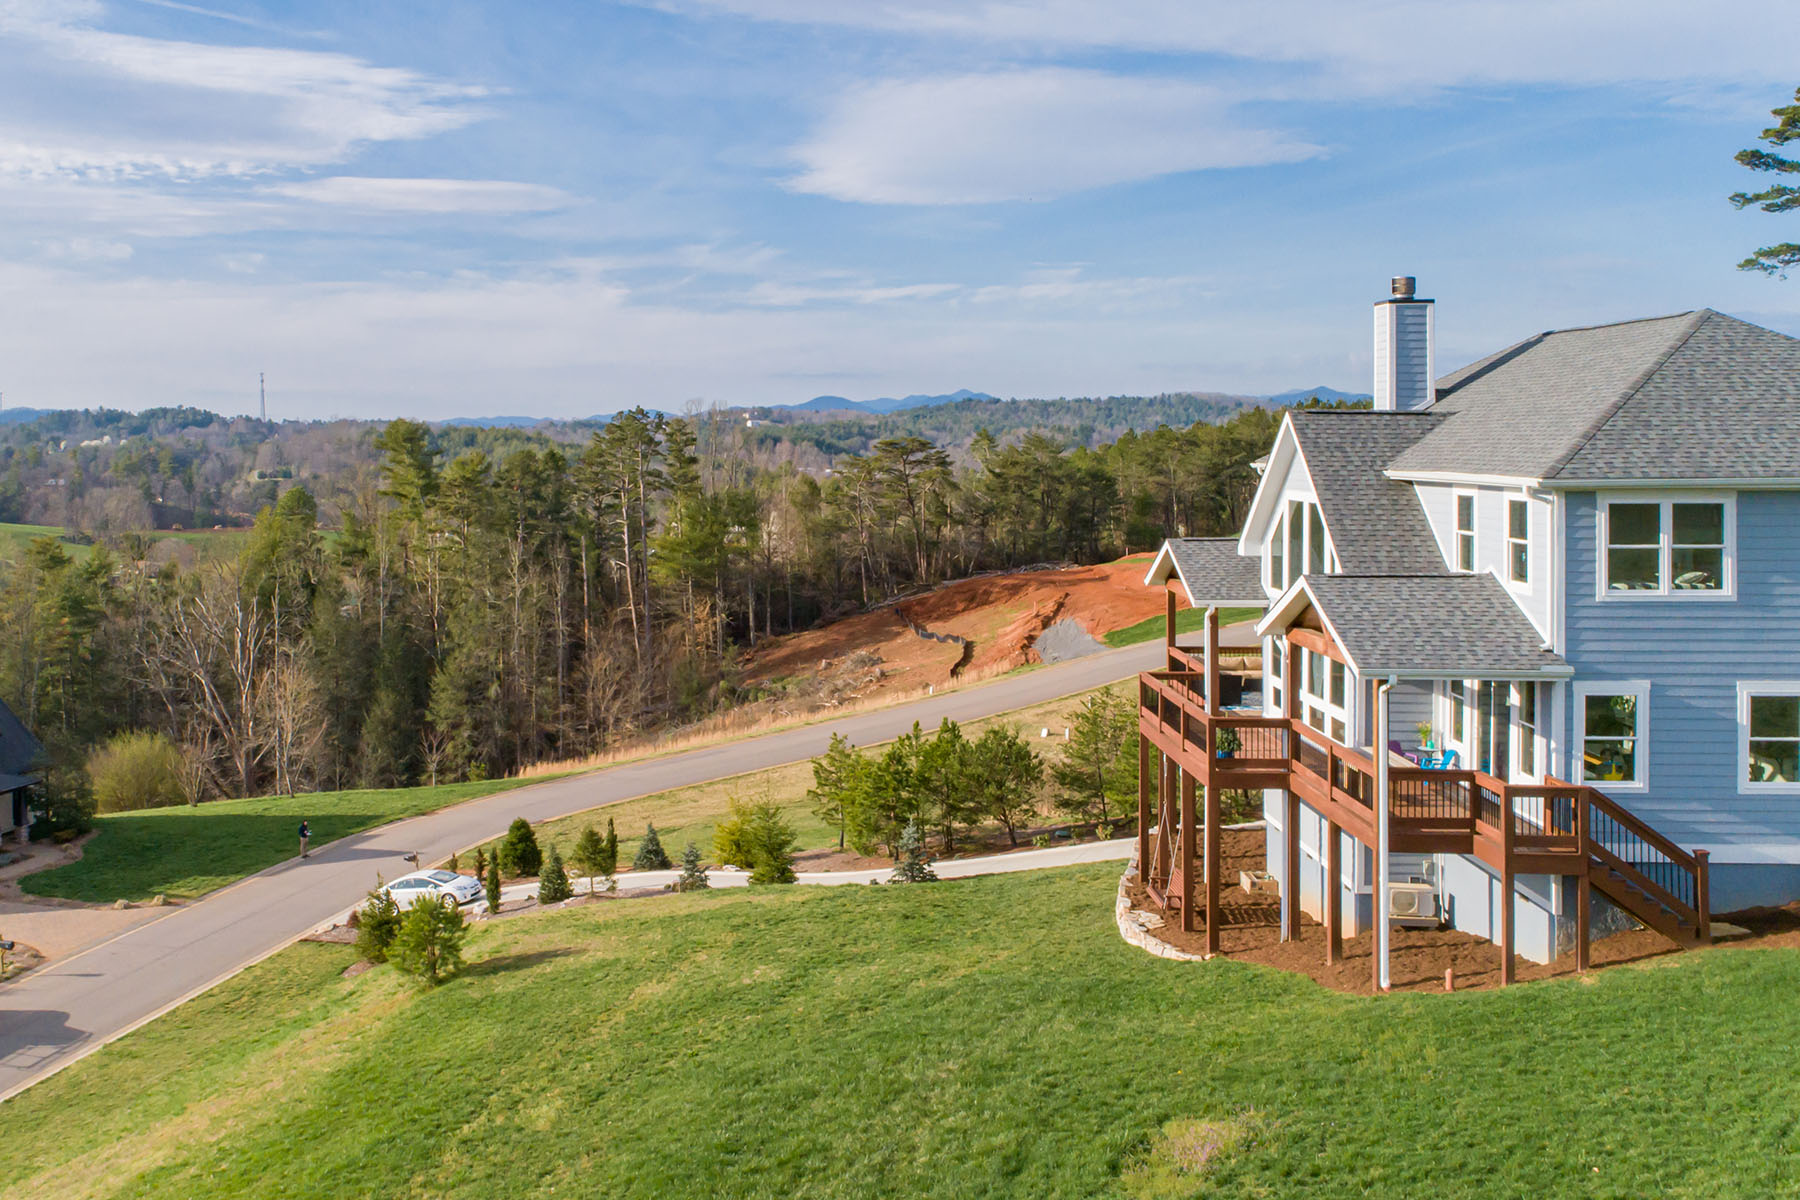 Single Family Homes for Active at GARRISON HILLS 29 Gracie Ln Weaverville, North Carolina 28787 United States